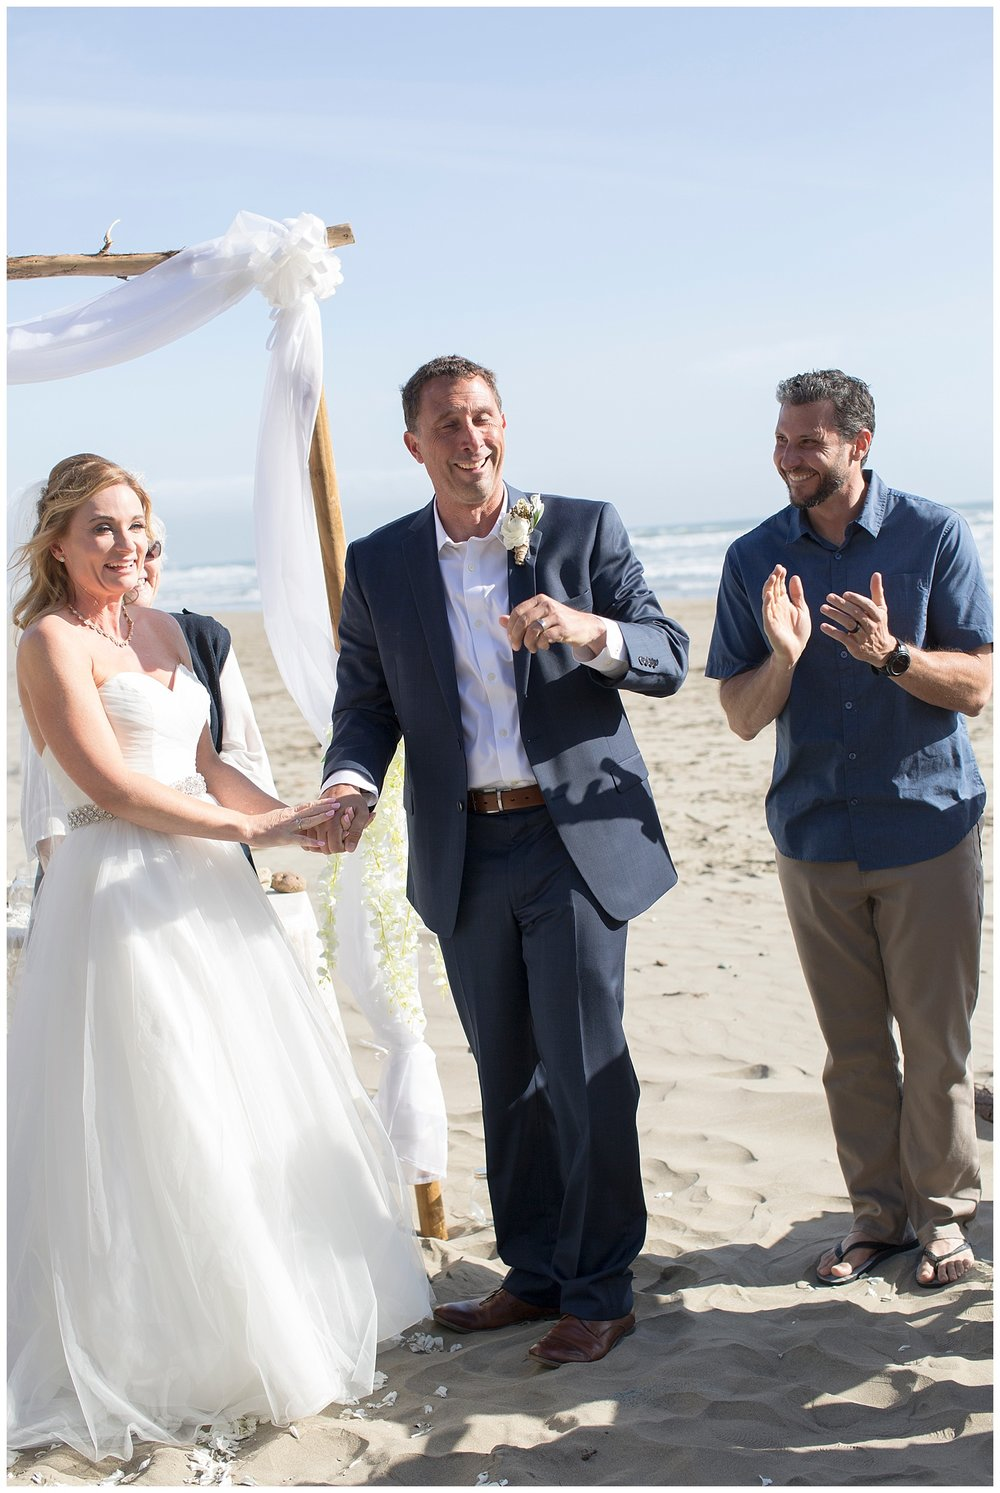 Malzone wedding_Beach wedding_Renoda Campbell Photography-6007.jpg